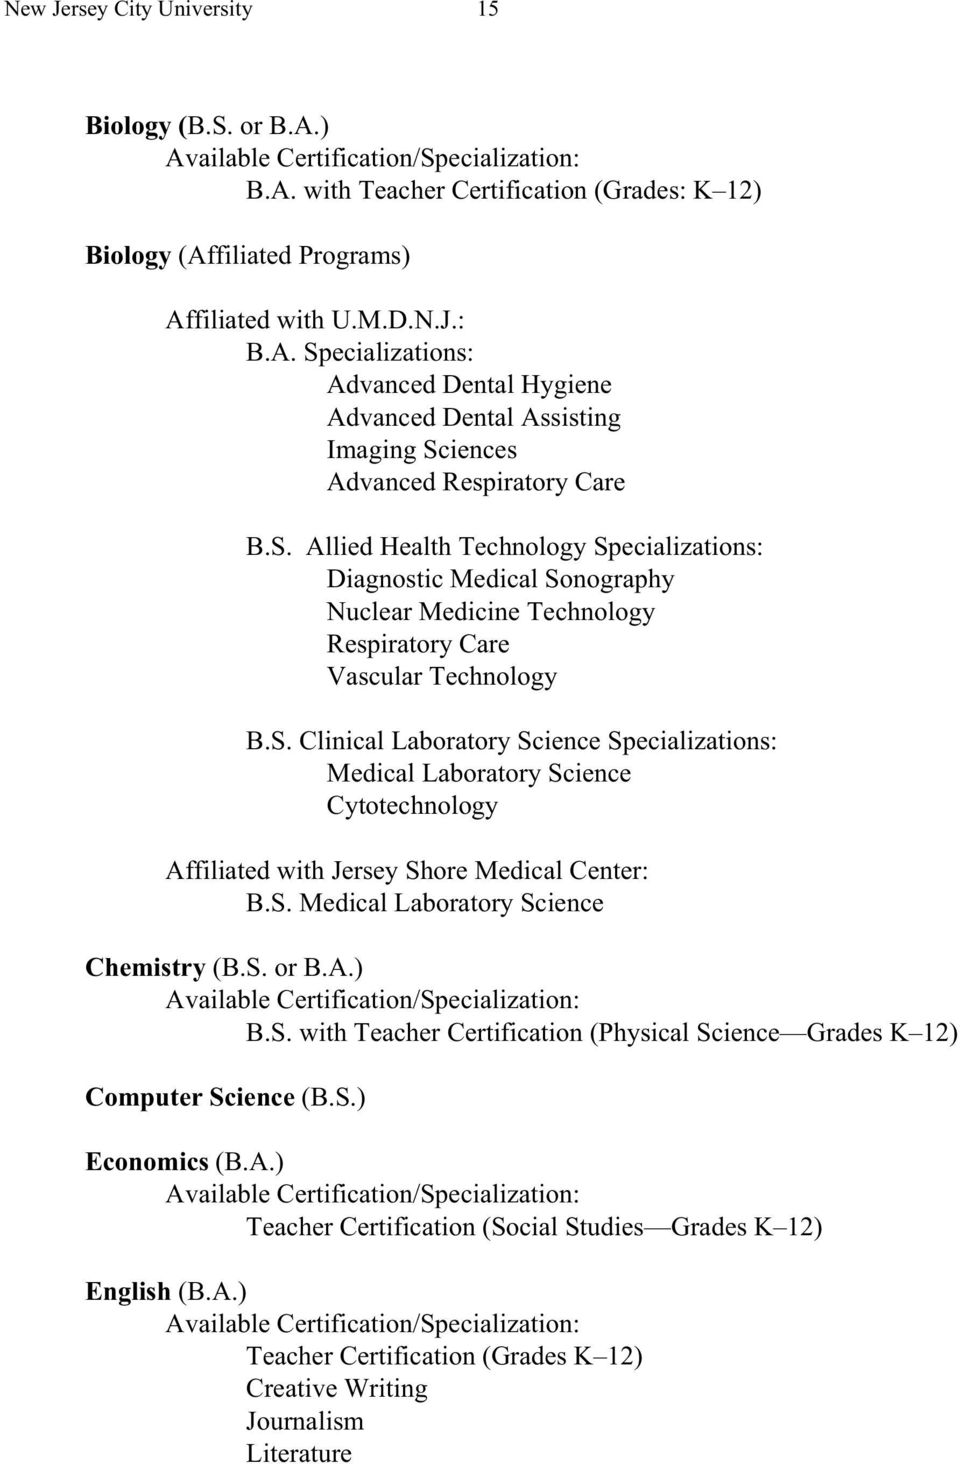 S. Medical Laboratory Science Chemistry (B.S. or B.A.) B.S. with Teacher Certification (Physical Science Grades K 12) Computer Science (B.S.) Economics (B.A.) Teacher Certification (Social Studies Grades K 12) English (B.